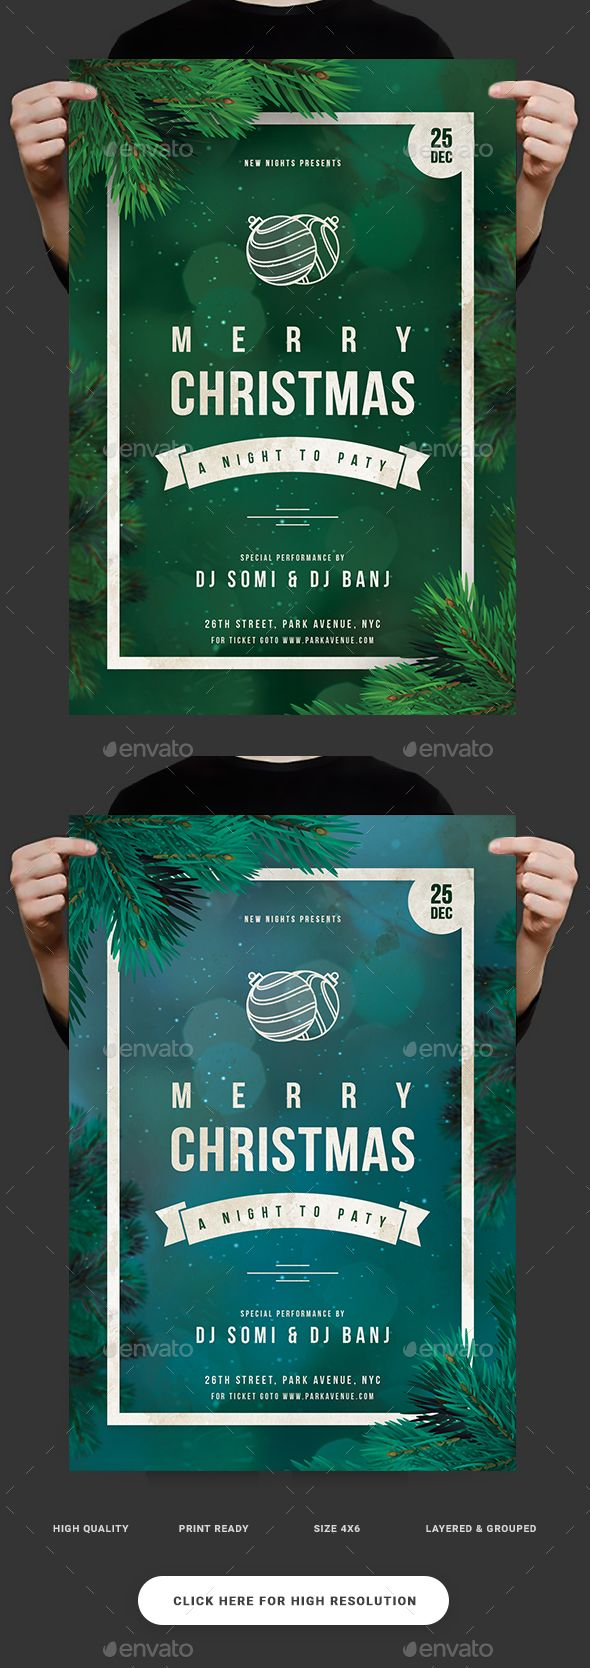 Christmas Party Flyer  — PSD Template #new year invitation #christmas card • Download ➝ https://graphicriver.net/item/christmas-party-flyer/19028866?ref=pxcr